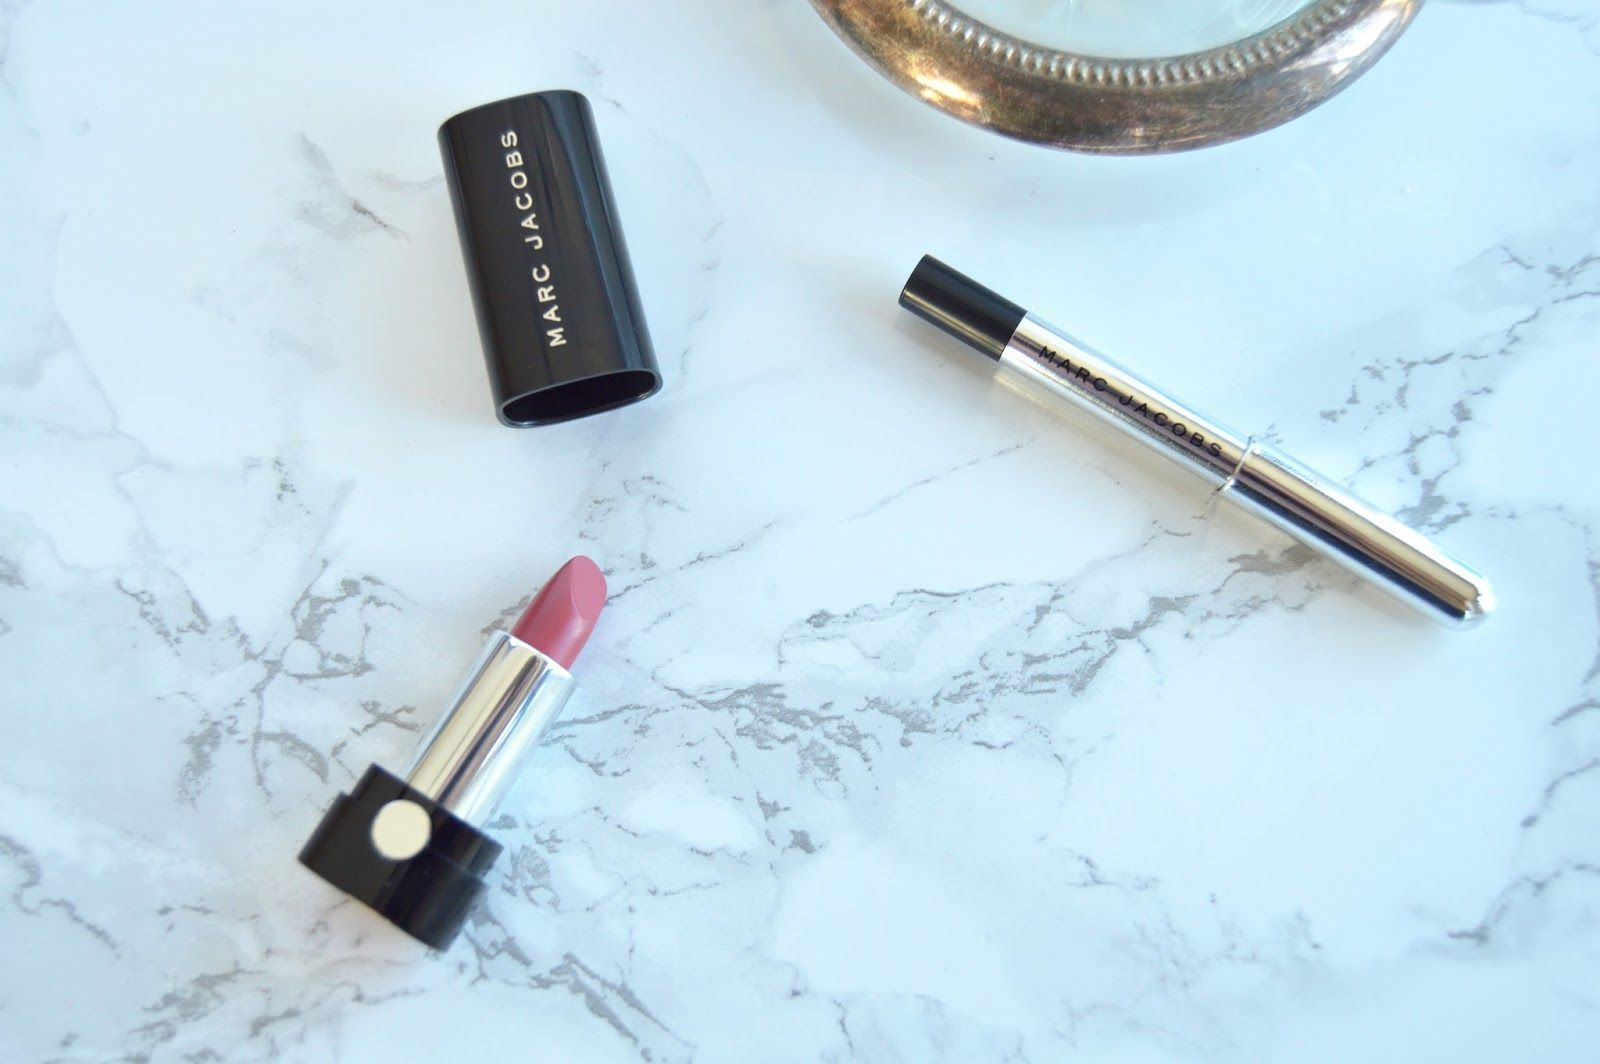 Sephora And Ulta Free Birthday Gift Review Of Marc Jacobs Benefit Cosmetics Shehasclass